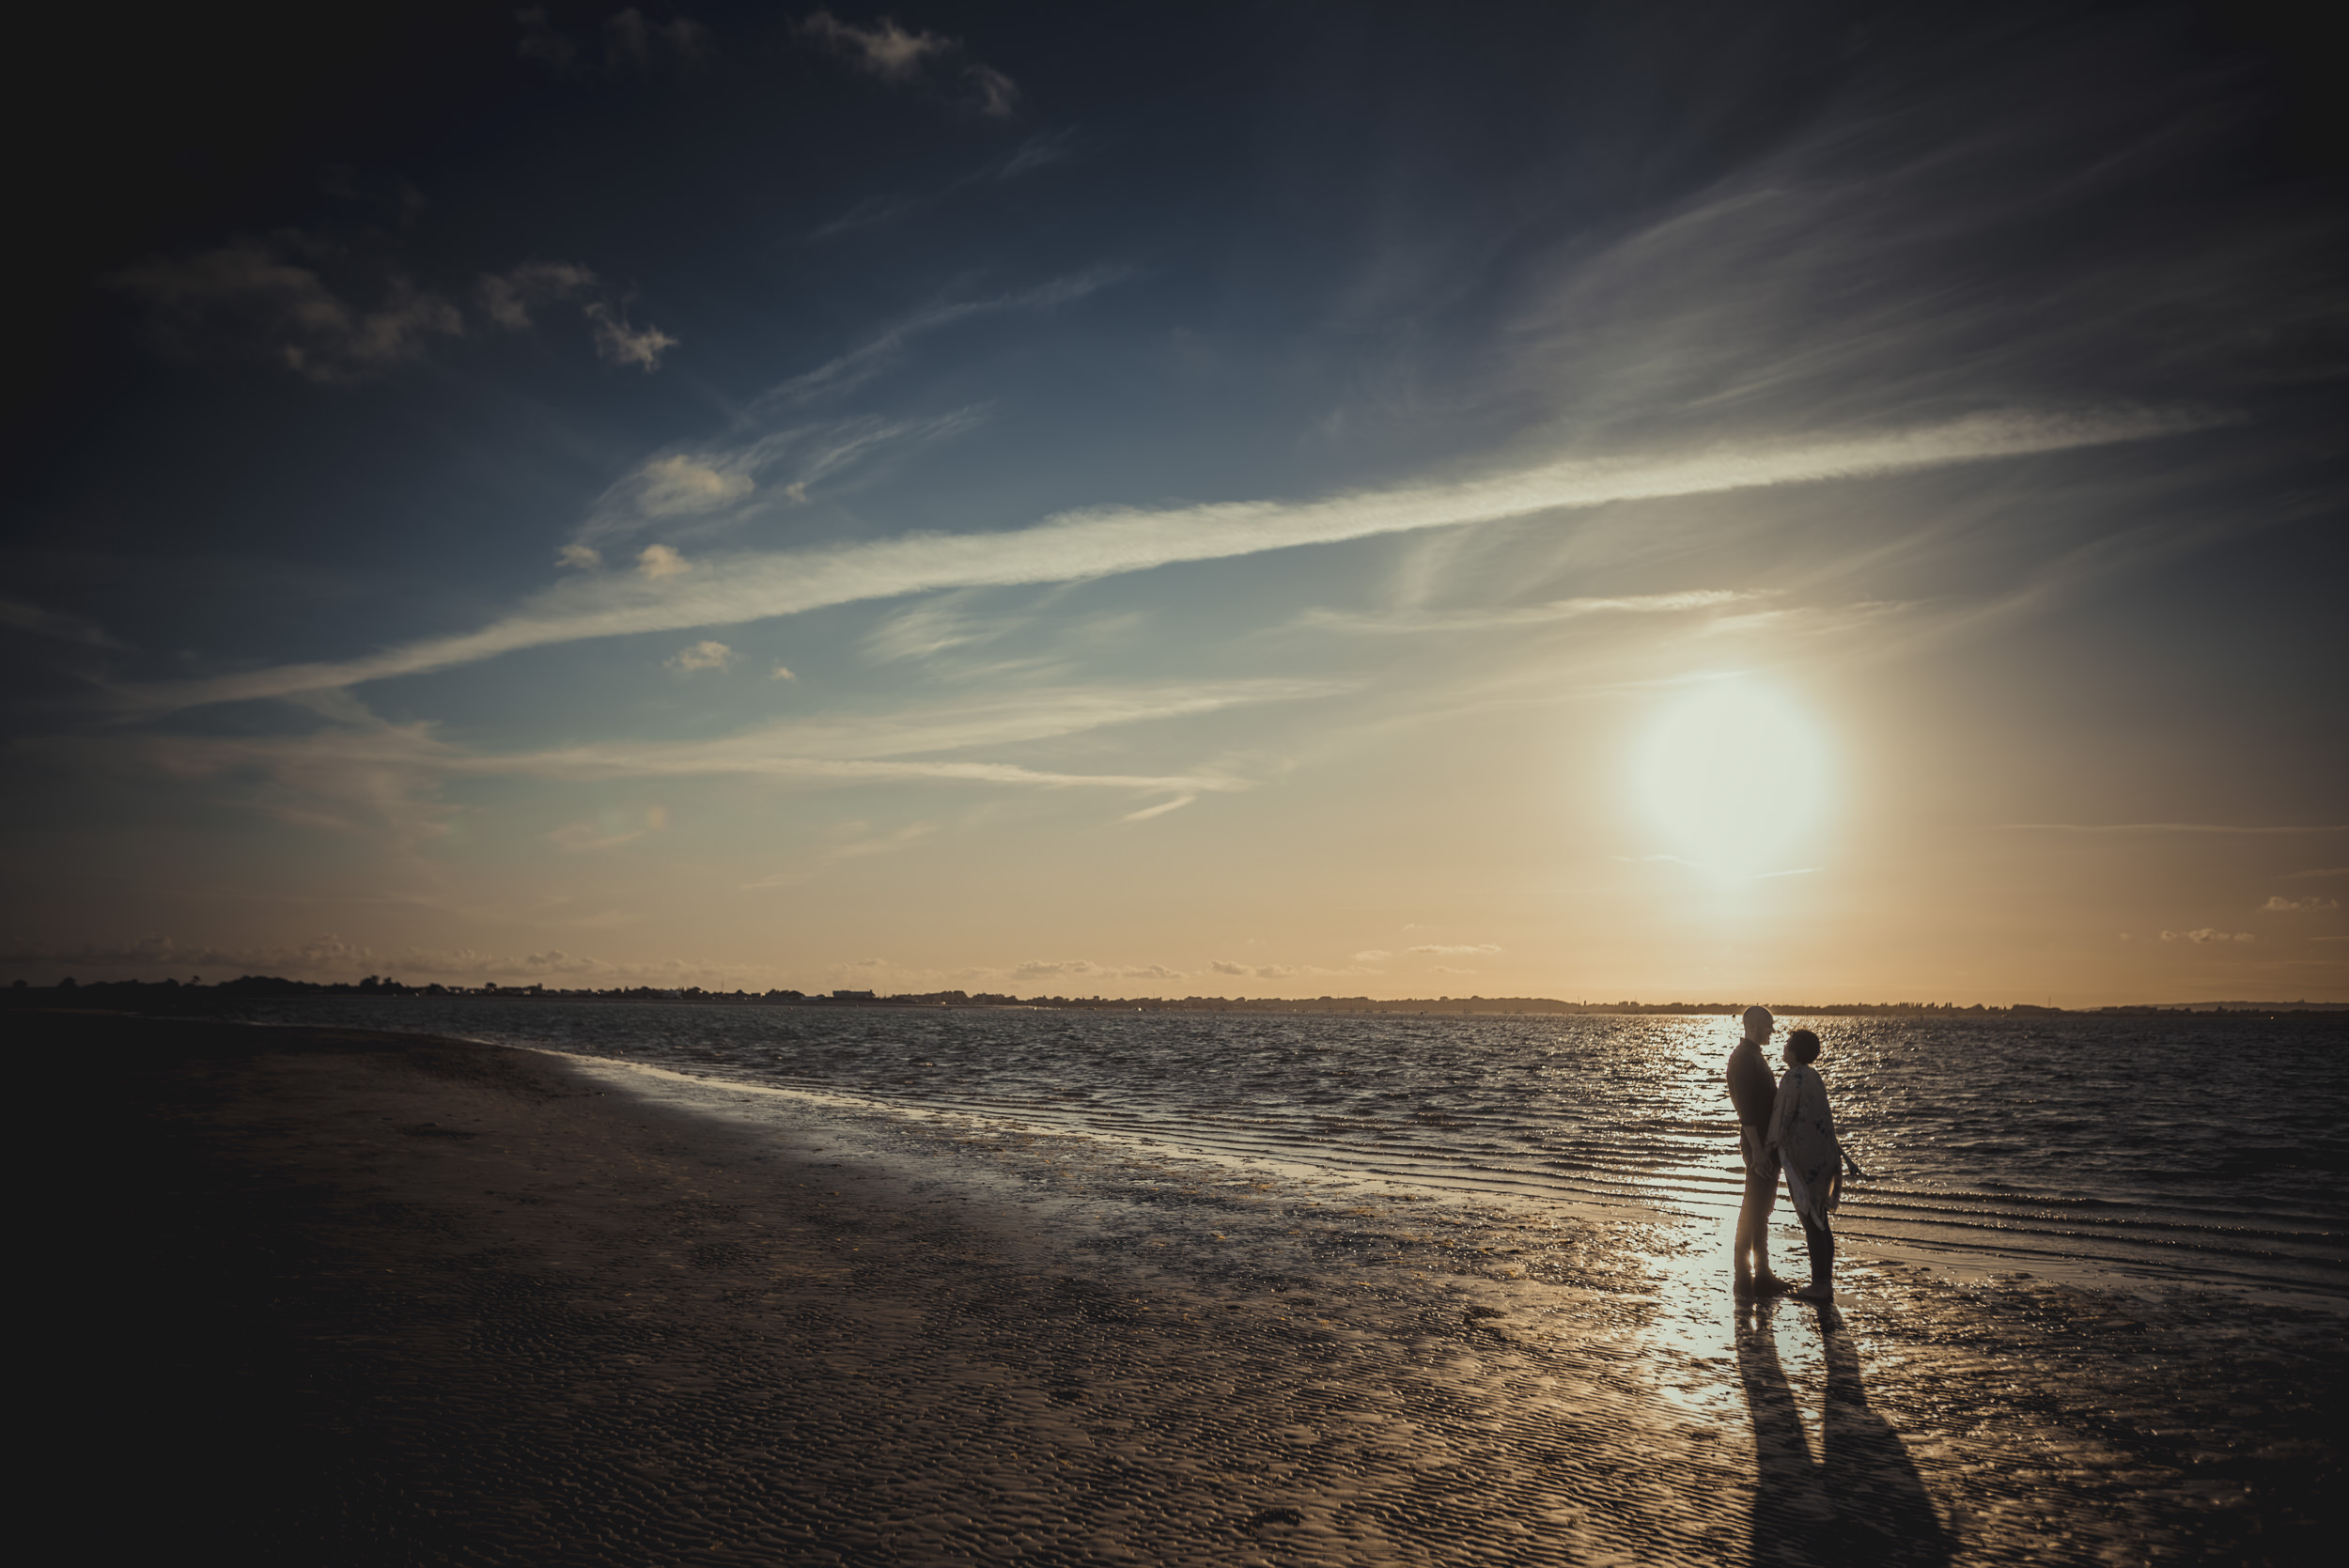 Tara-and-Simon-Engagement-Session- West-Wittering-Beach-West-Sussex-Manu-Mendoza-Wedding-Photography-057.jpg